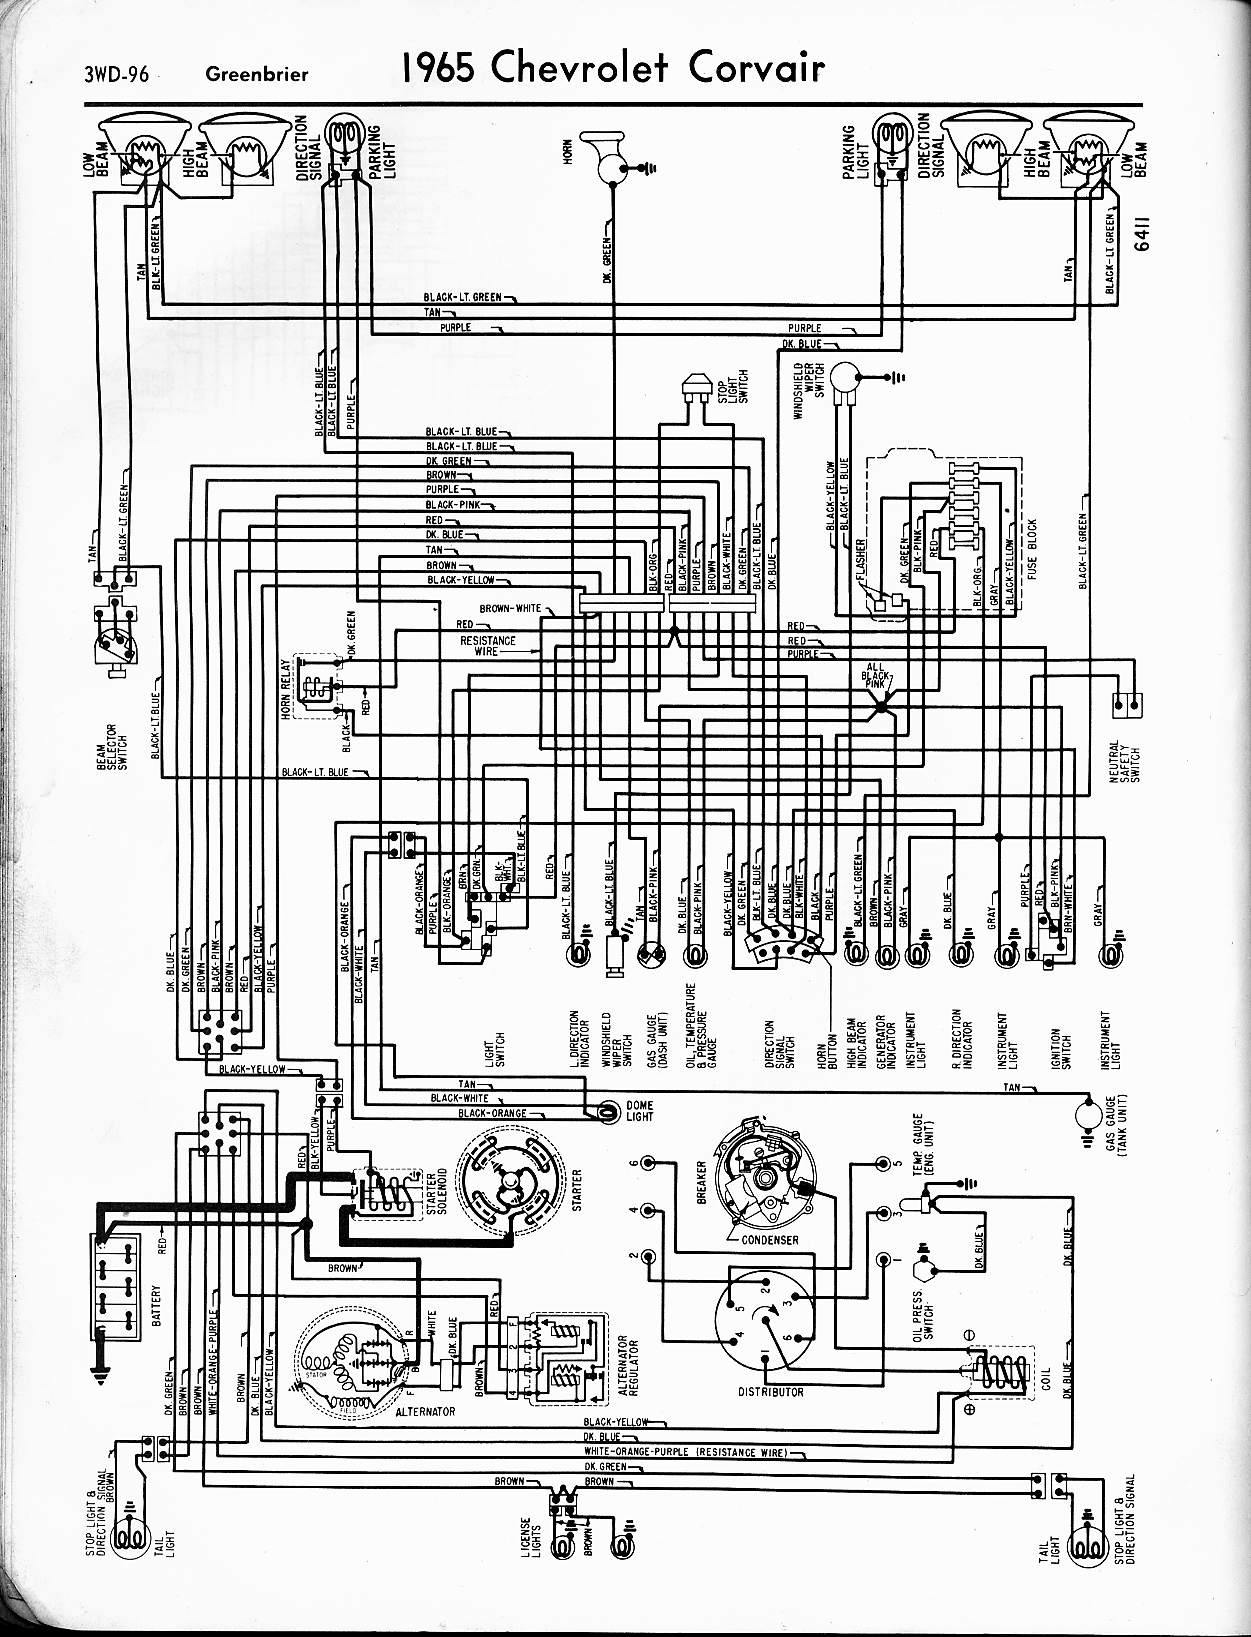 chevy wiring diagrams 1965 corvair greenbrier